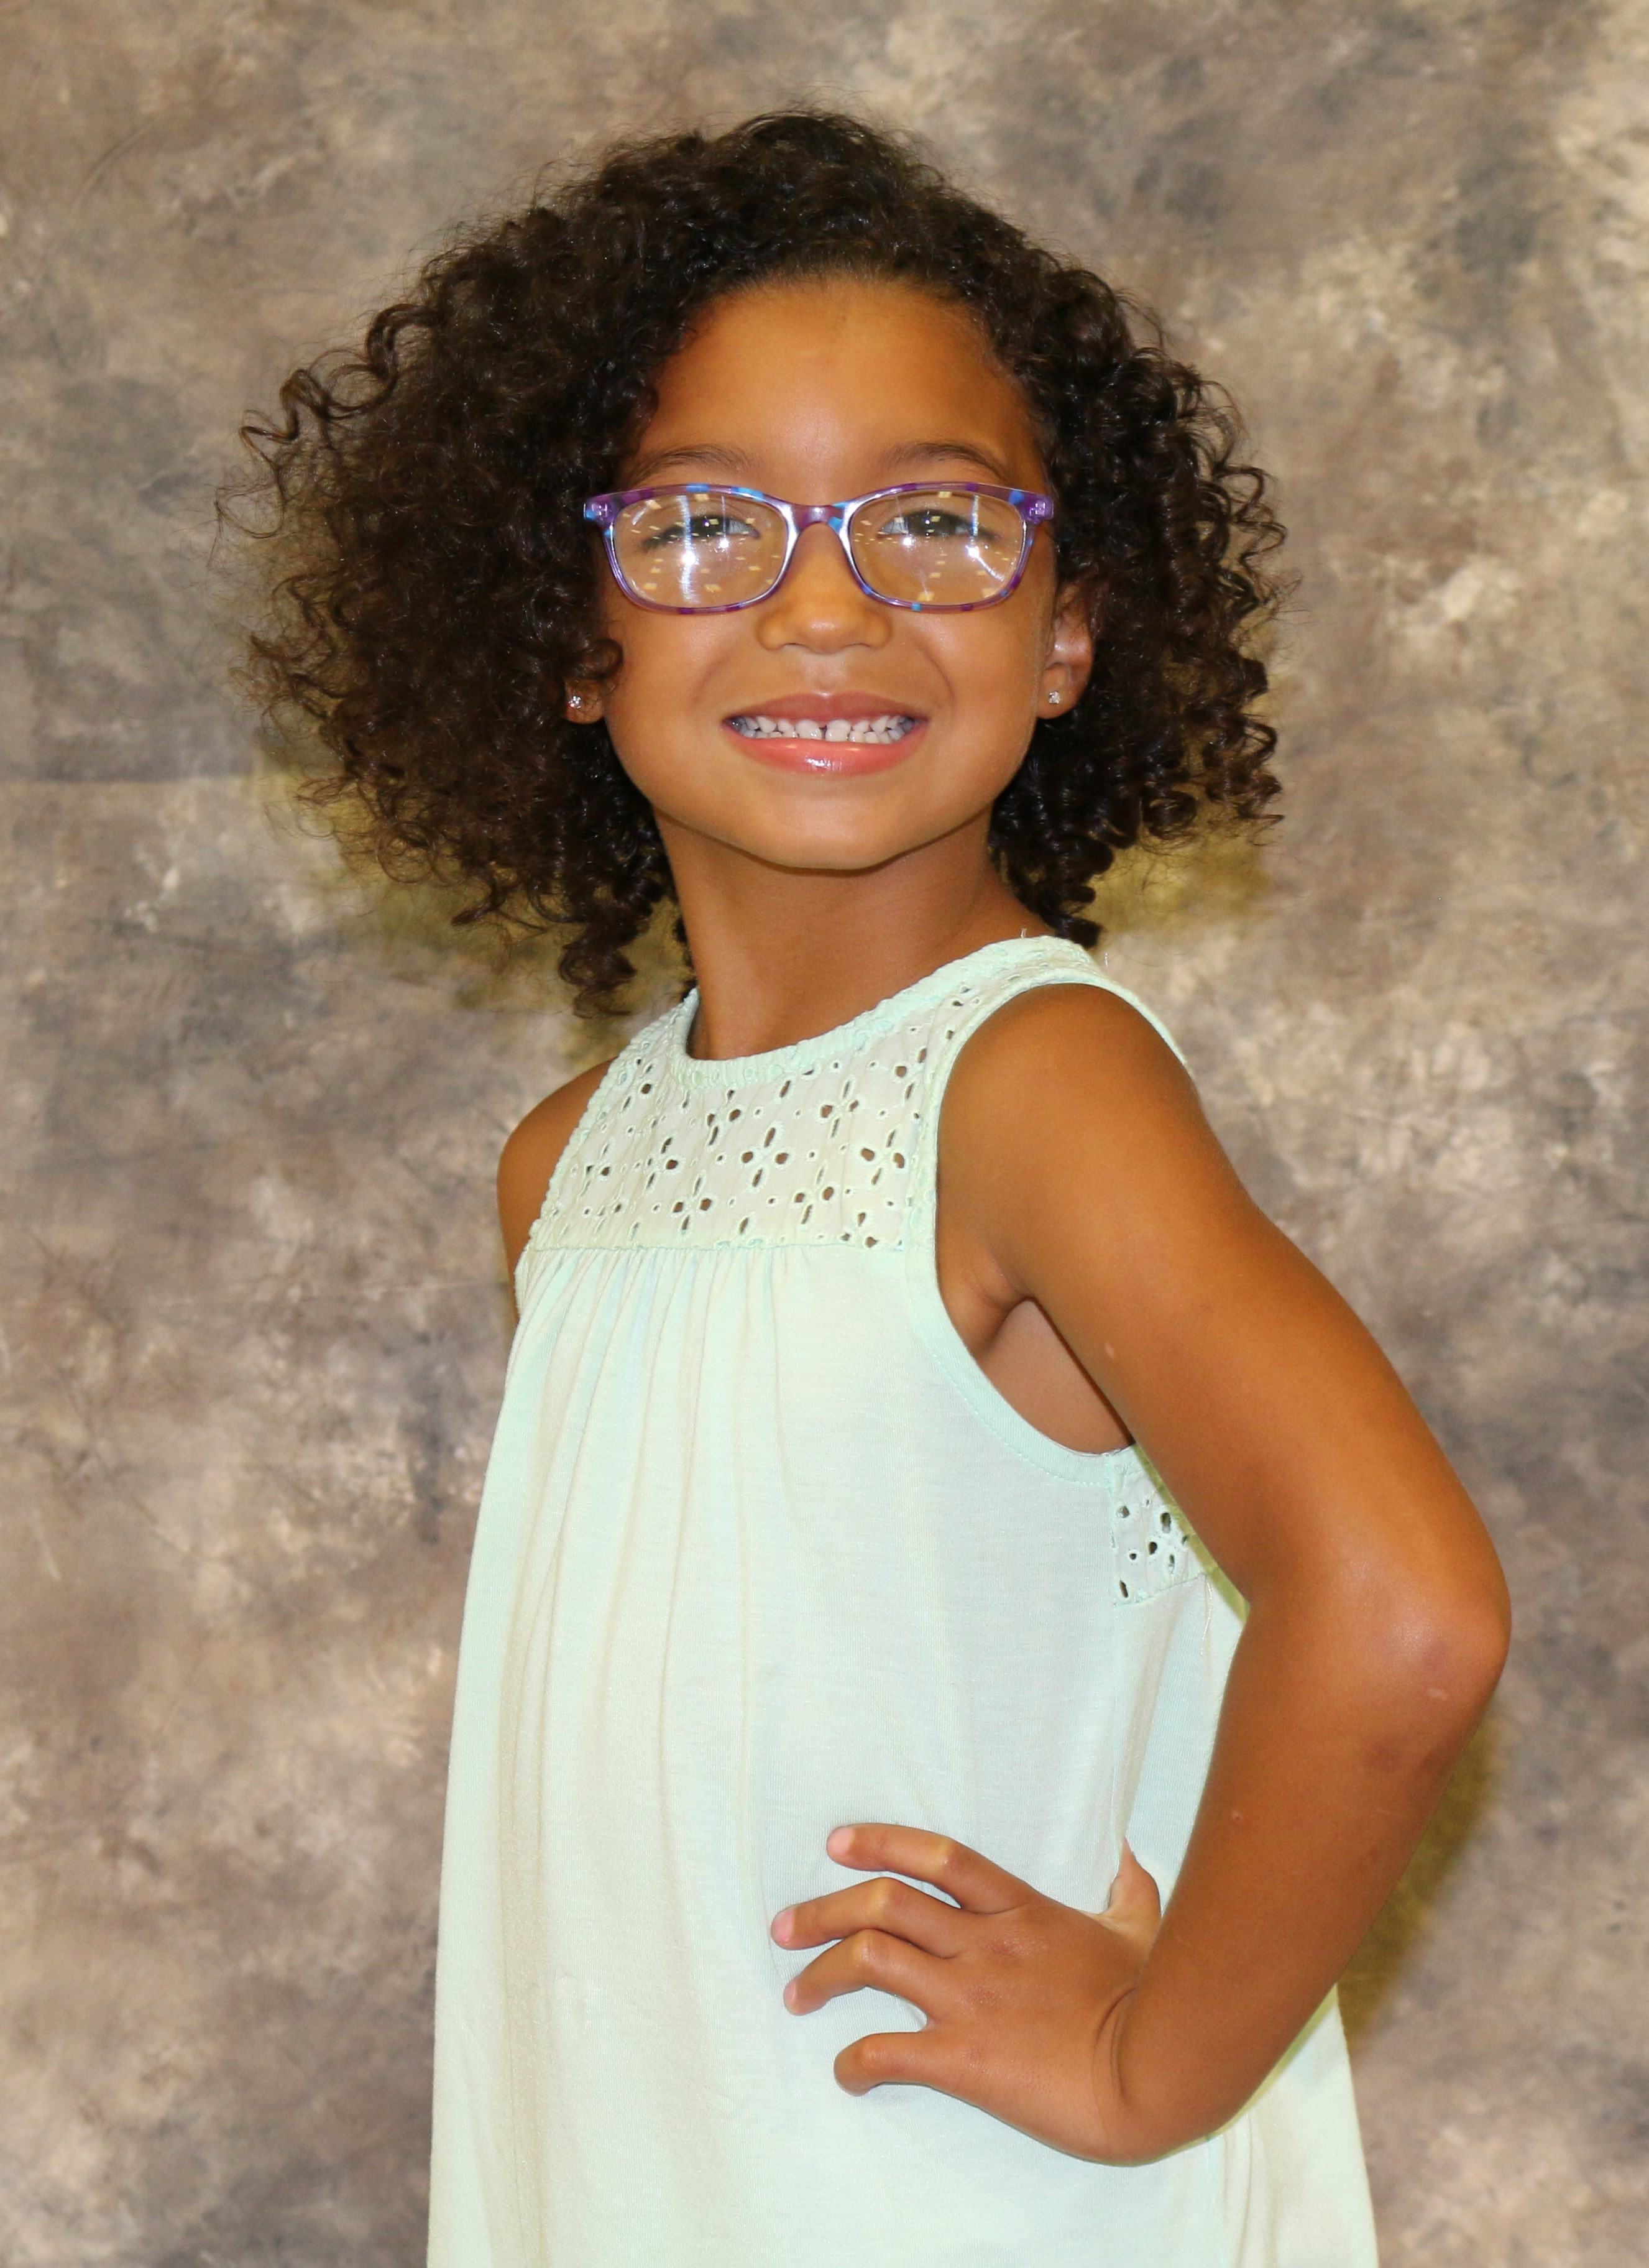 Little Miss Contestant - Hadleigh Crawford 5